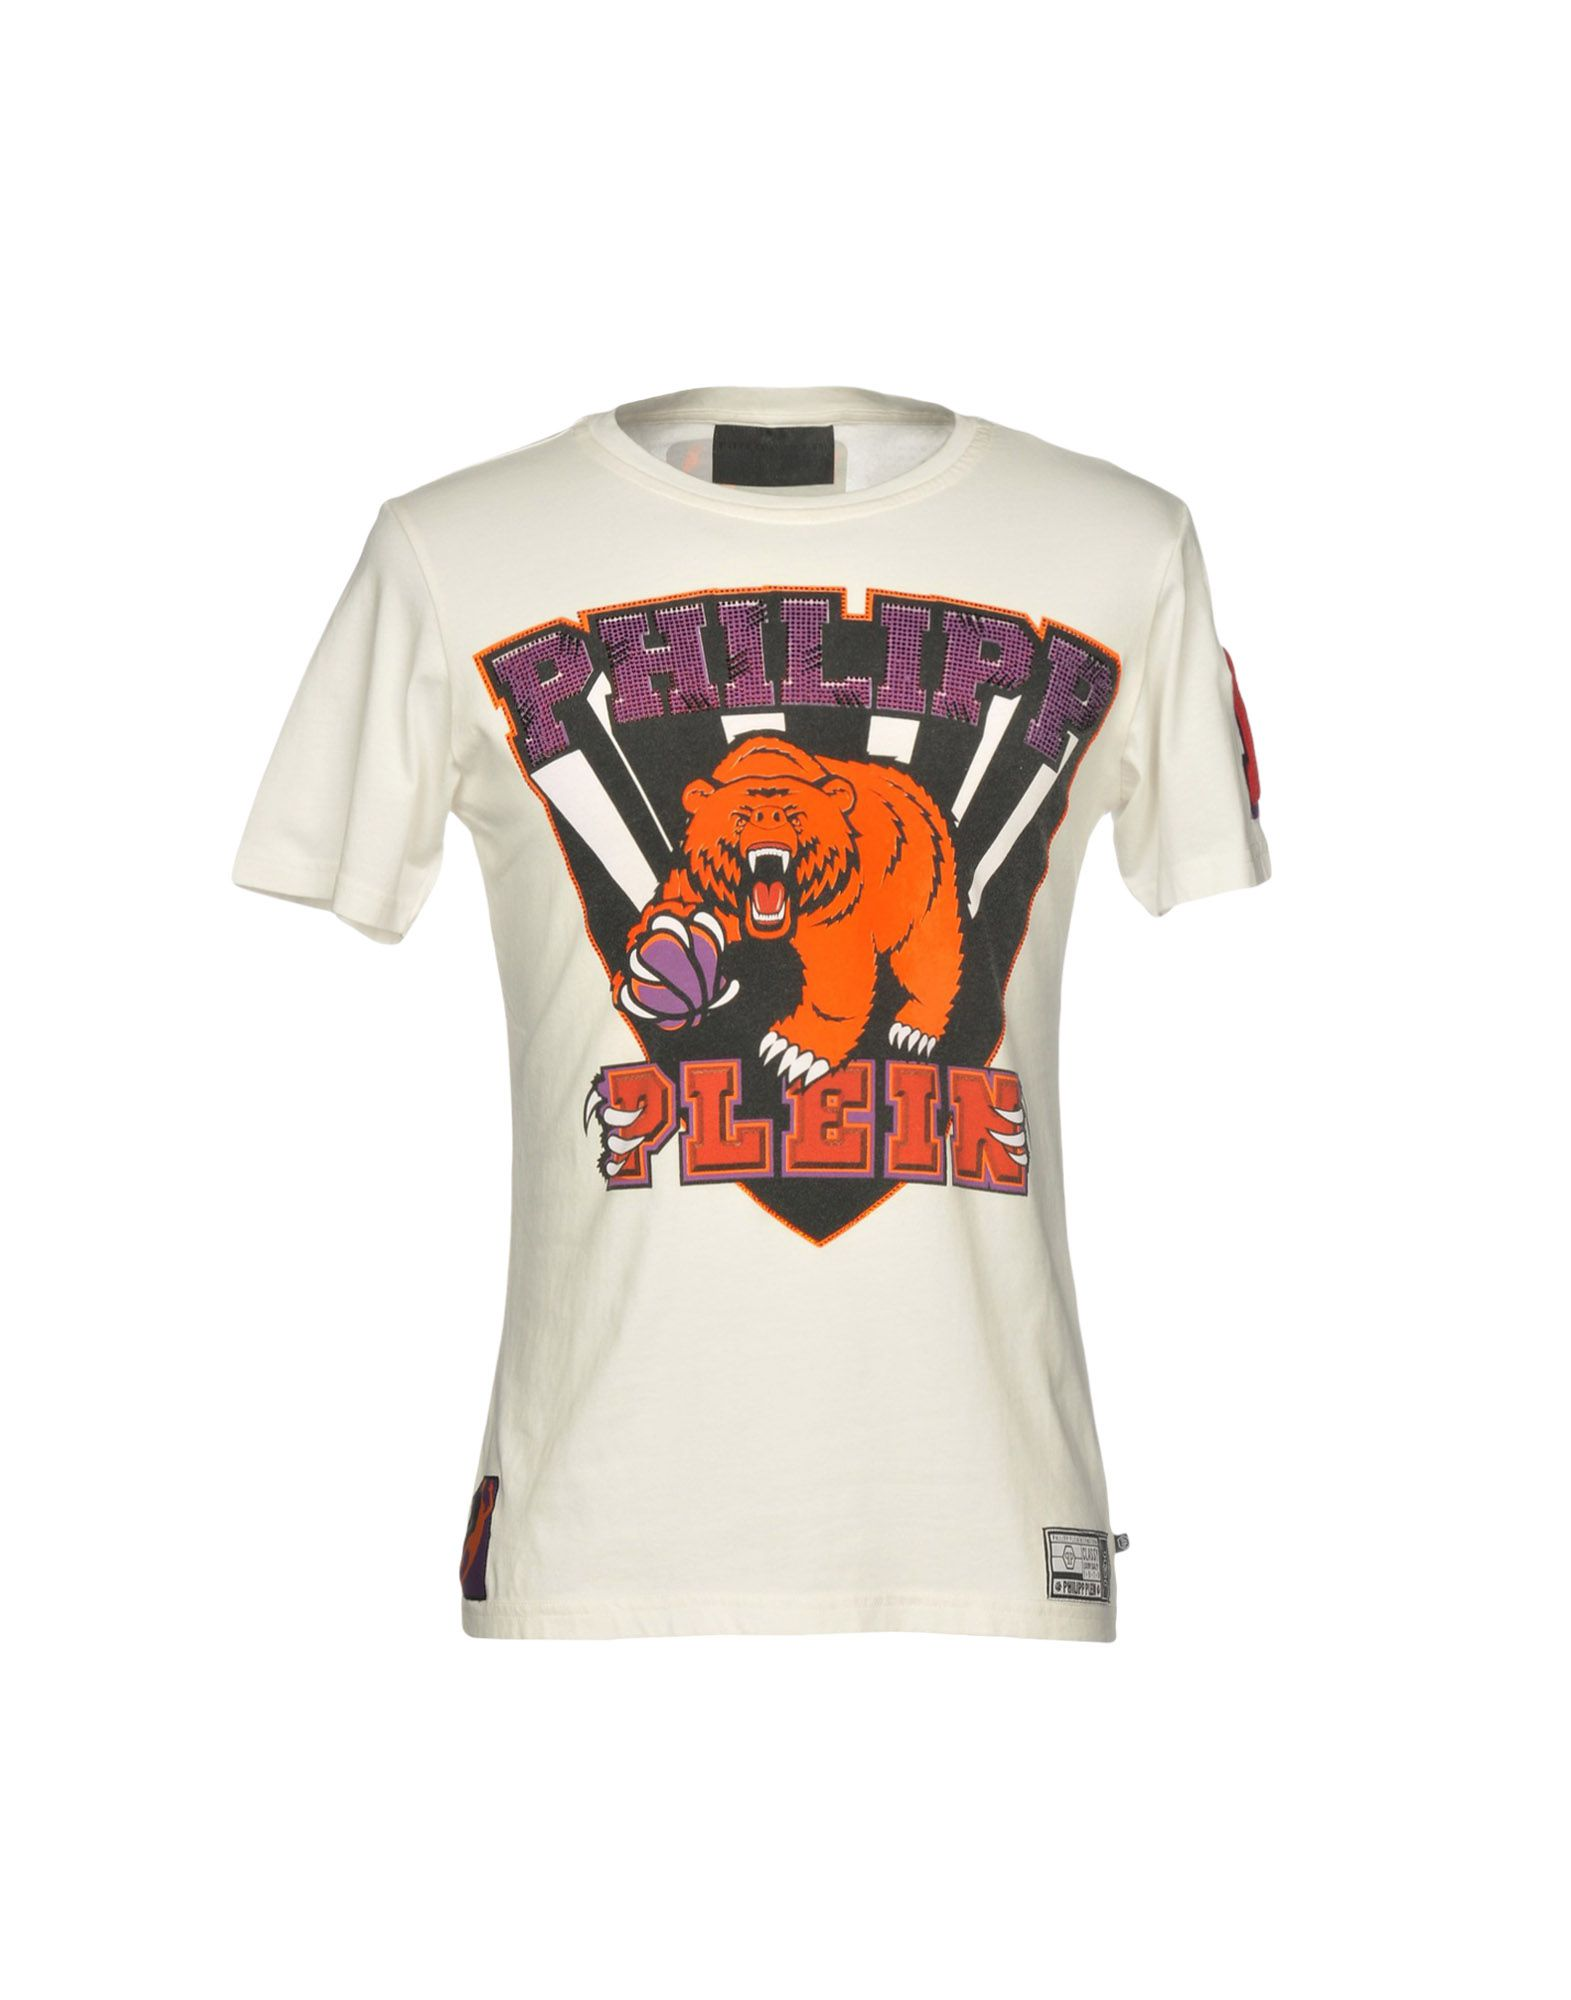 T-Shirt - Philipp Plein Uomo - T-Shirt 12197996MC f5c1cc